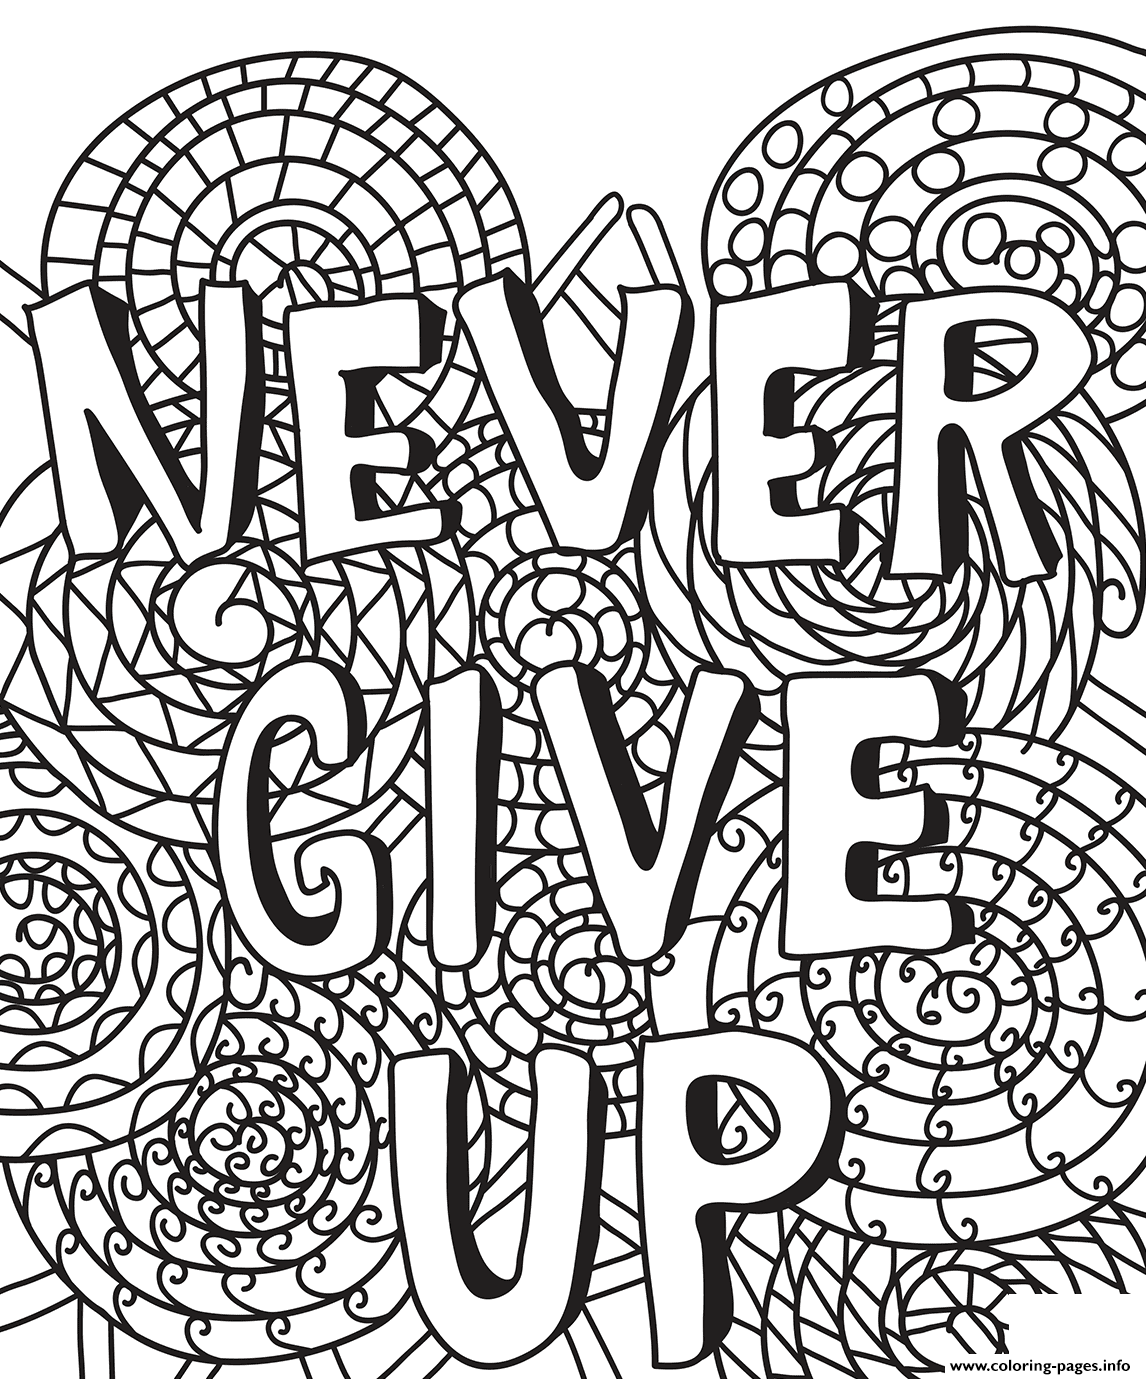 Never Give Up coloring pages